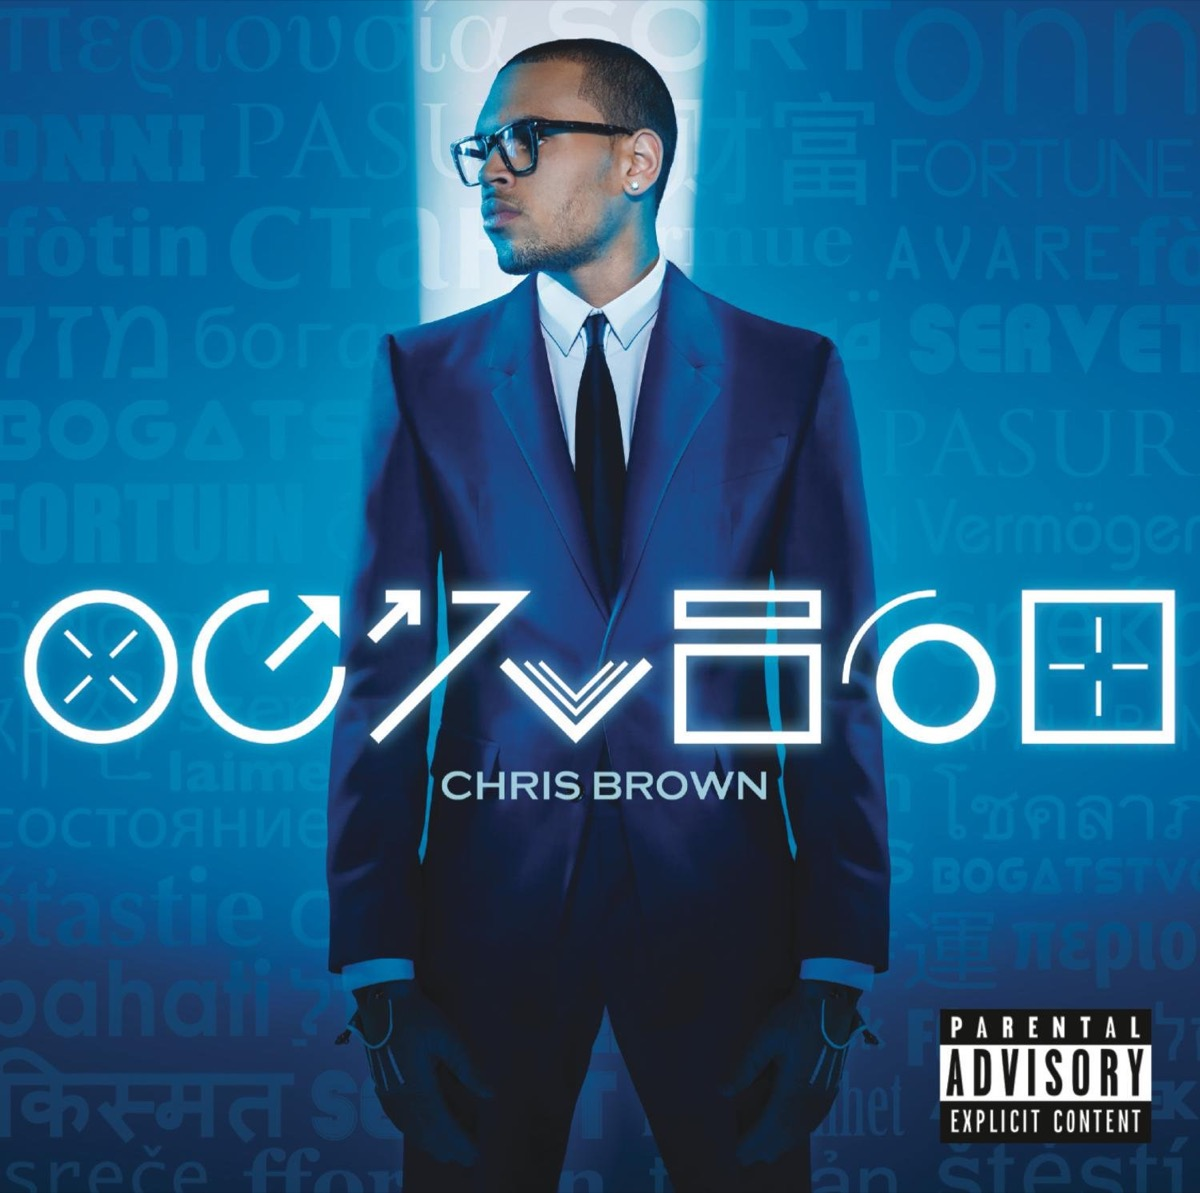 """The album cover of """"Fortune"""" by Chris Brown"""